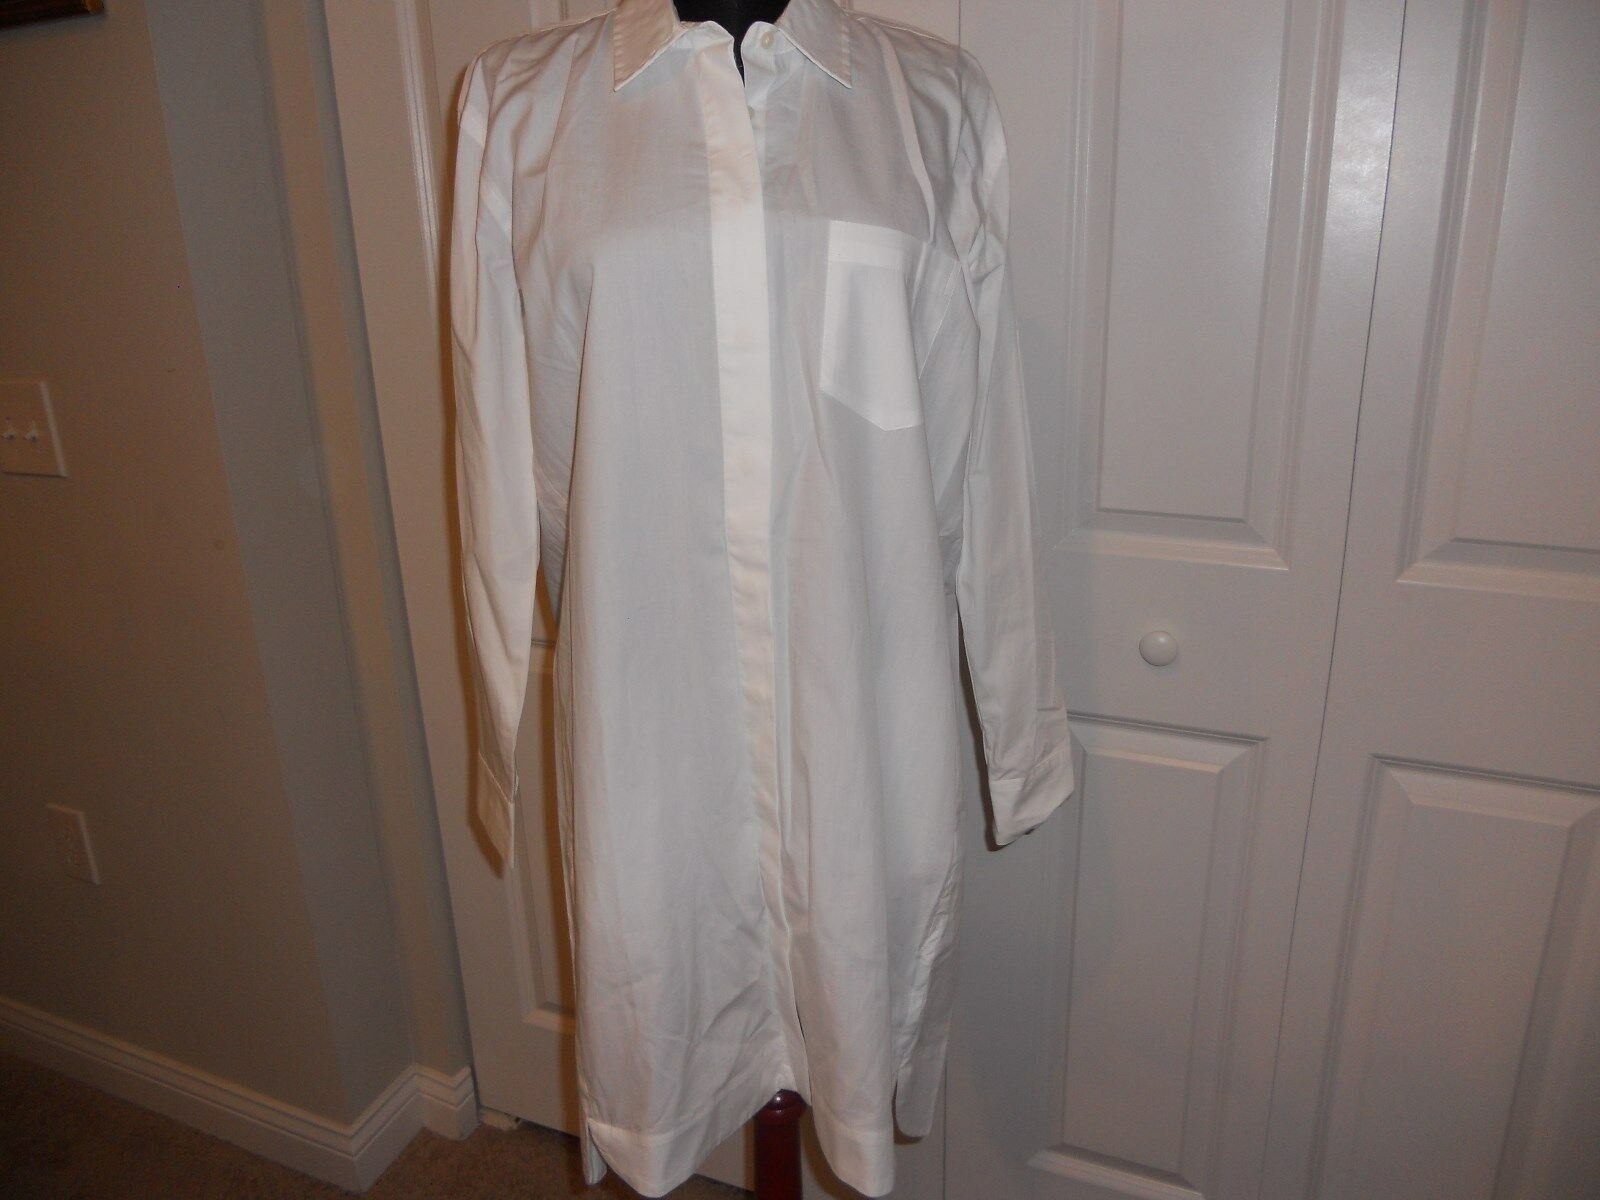 NWT MADEWELL 1937 COURTYARD SHIRTDRESS IN WHITE SIZE SMALL